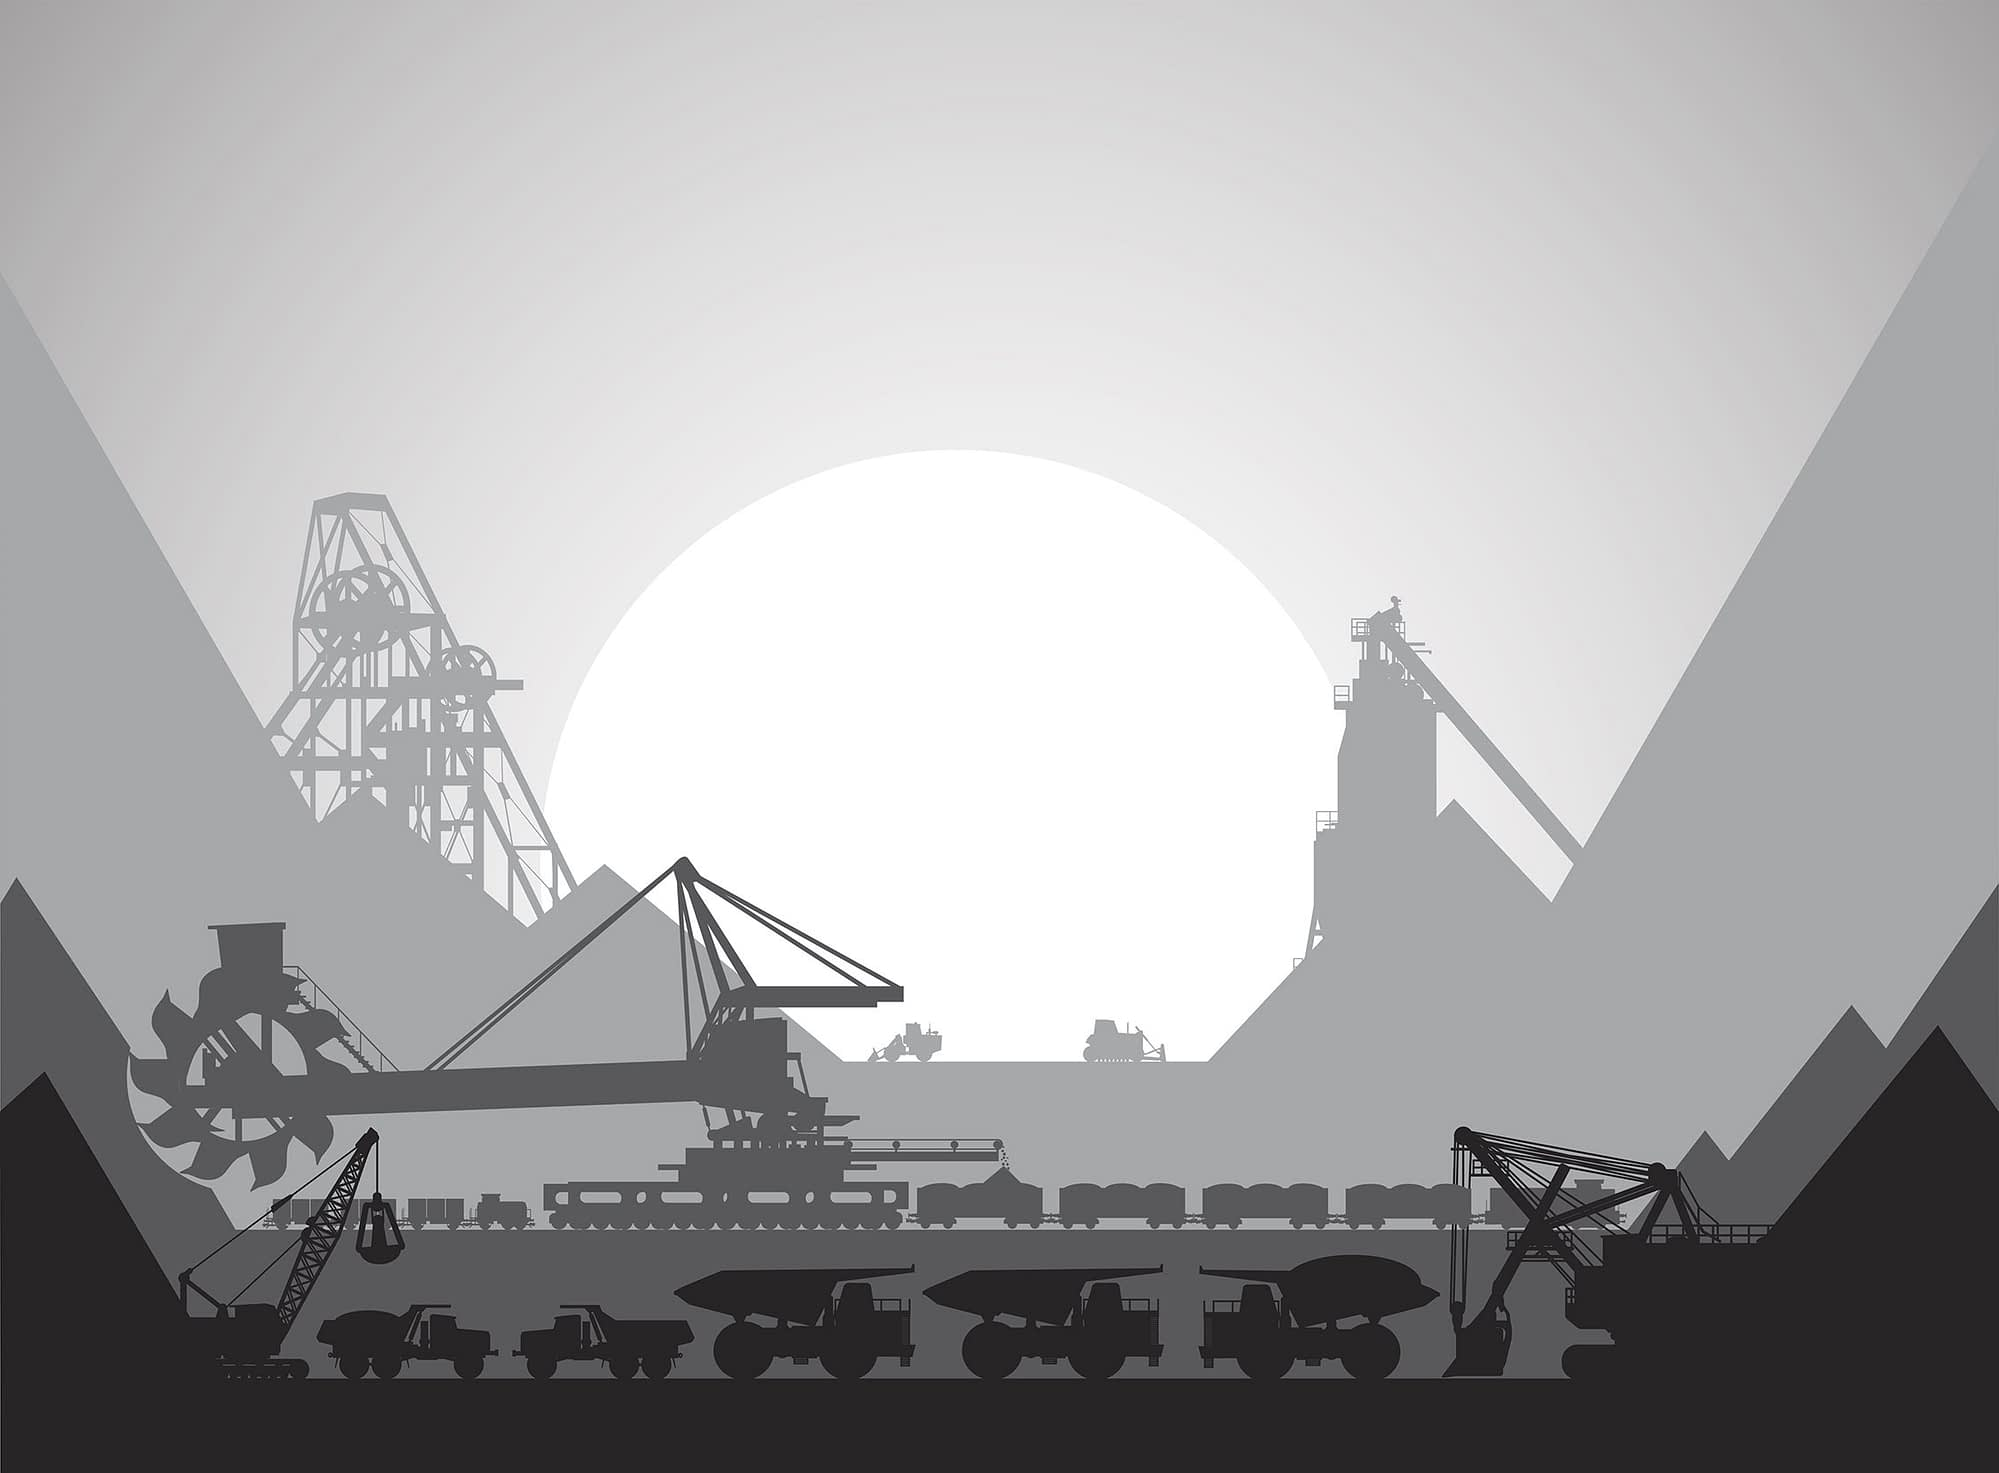 Mining complex for the development of minerals